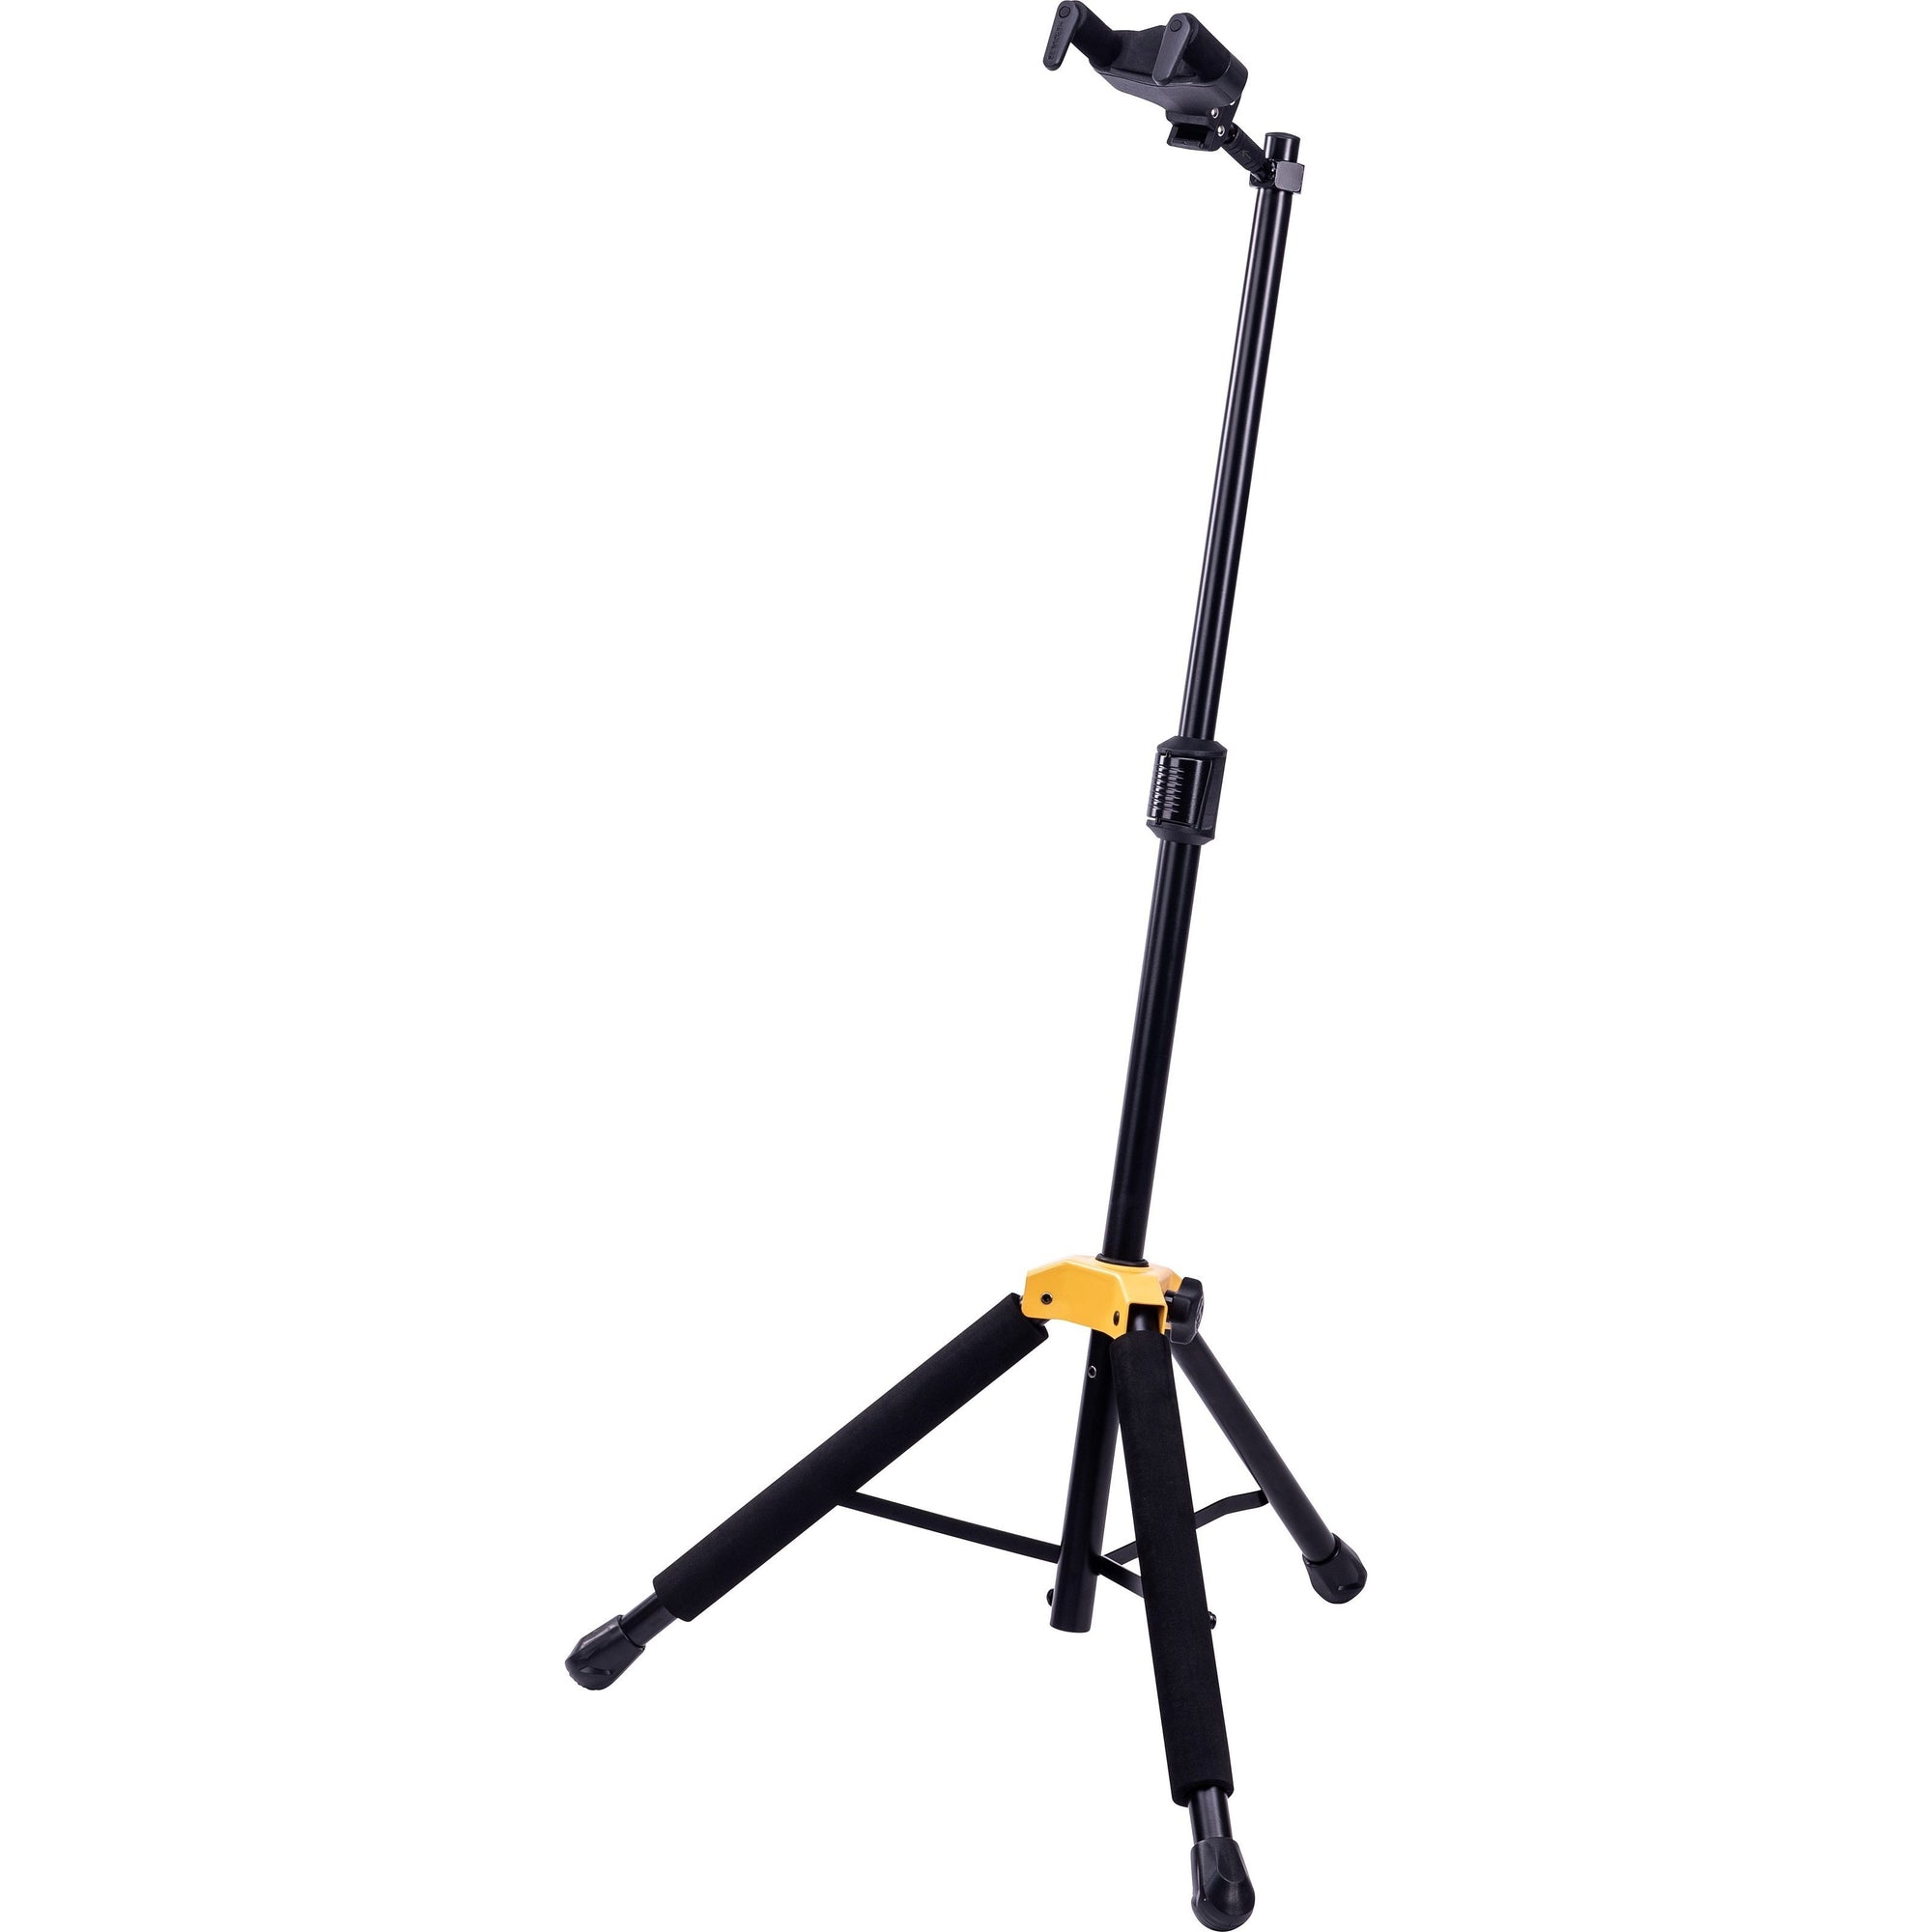 Hercules GS415B PLUS AutoGrip System Guitar Stand